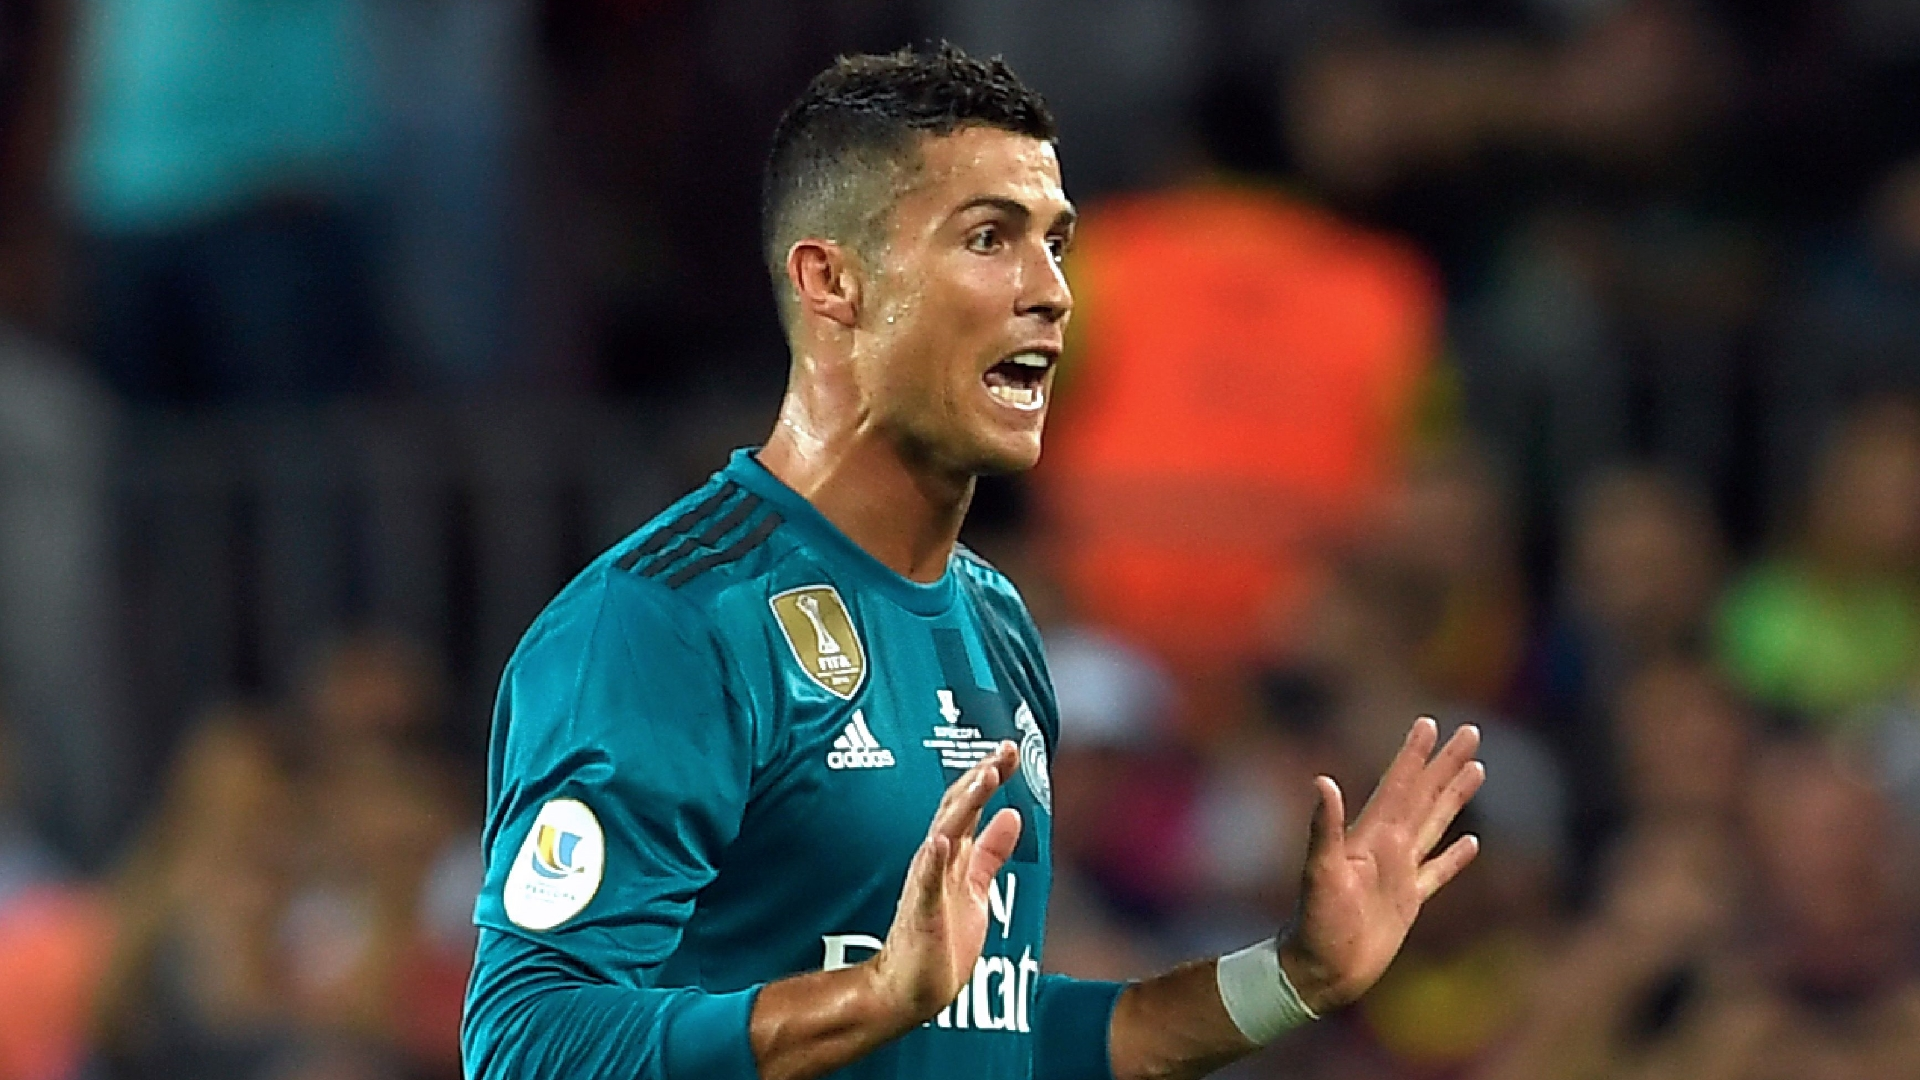 Cristiano Ronaldo, Real Madrid Supercopa